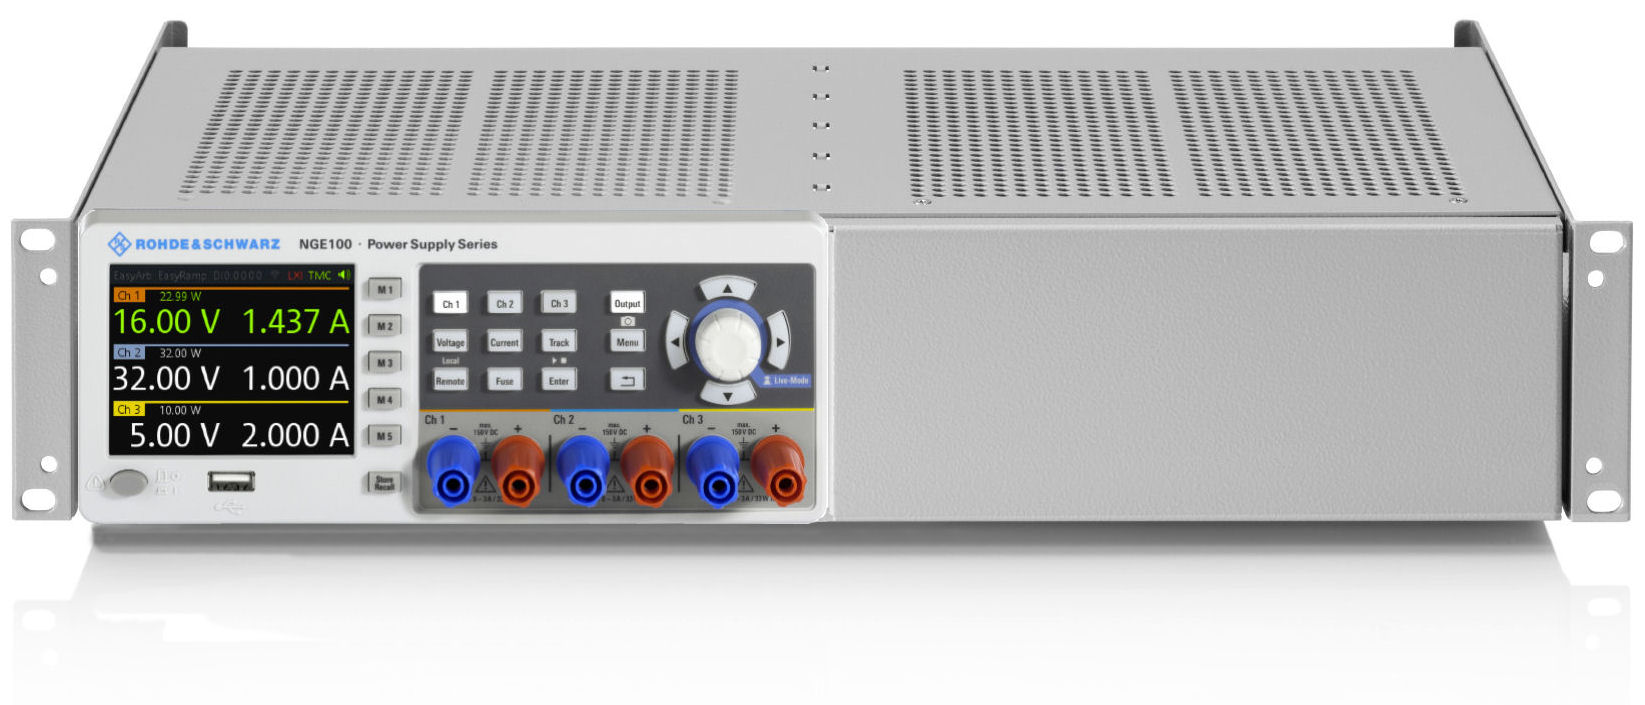 Rshmc804x Dc Power Supply Rohde Schwarz Solutions Isolated With Virtual Remote Sense 19 Rackmount Kit